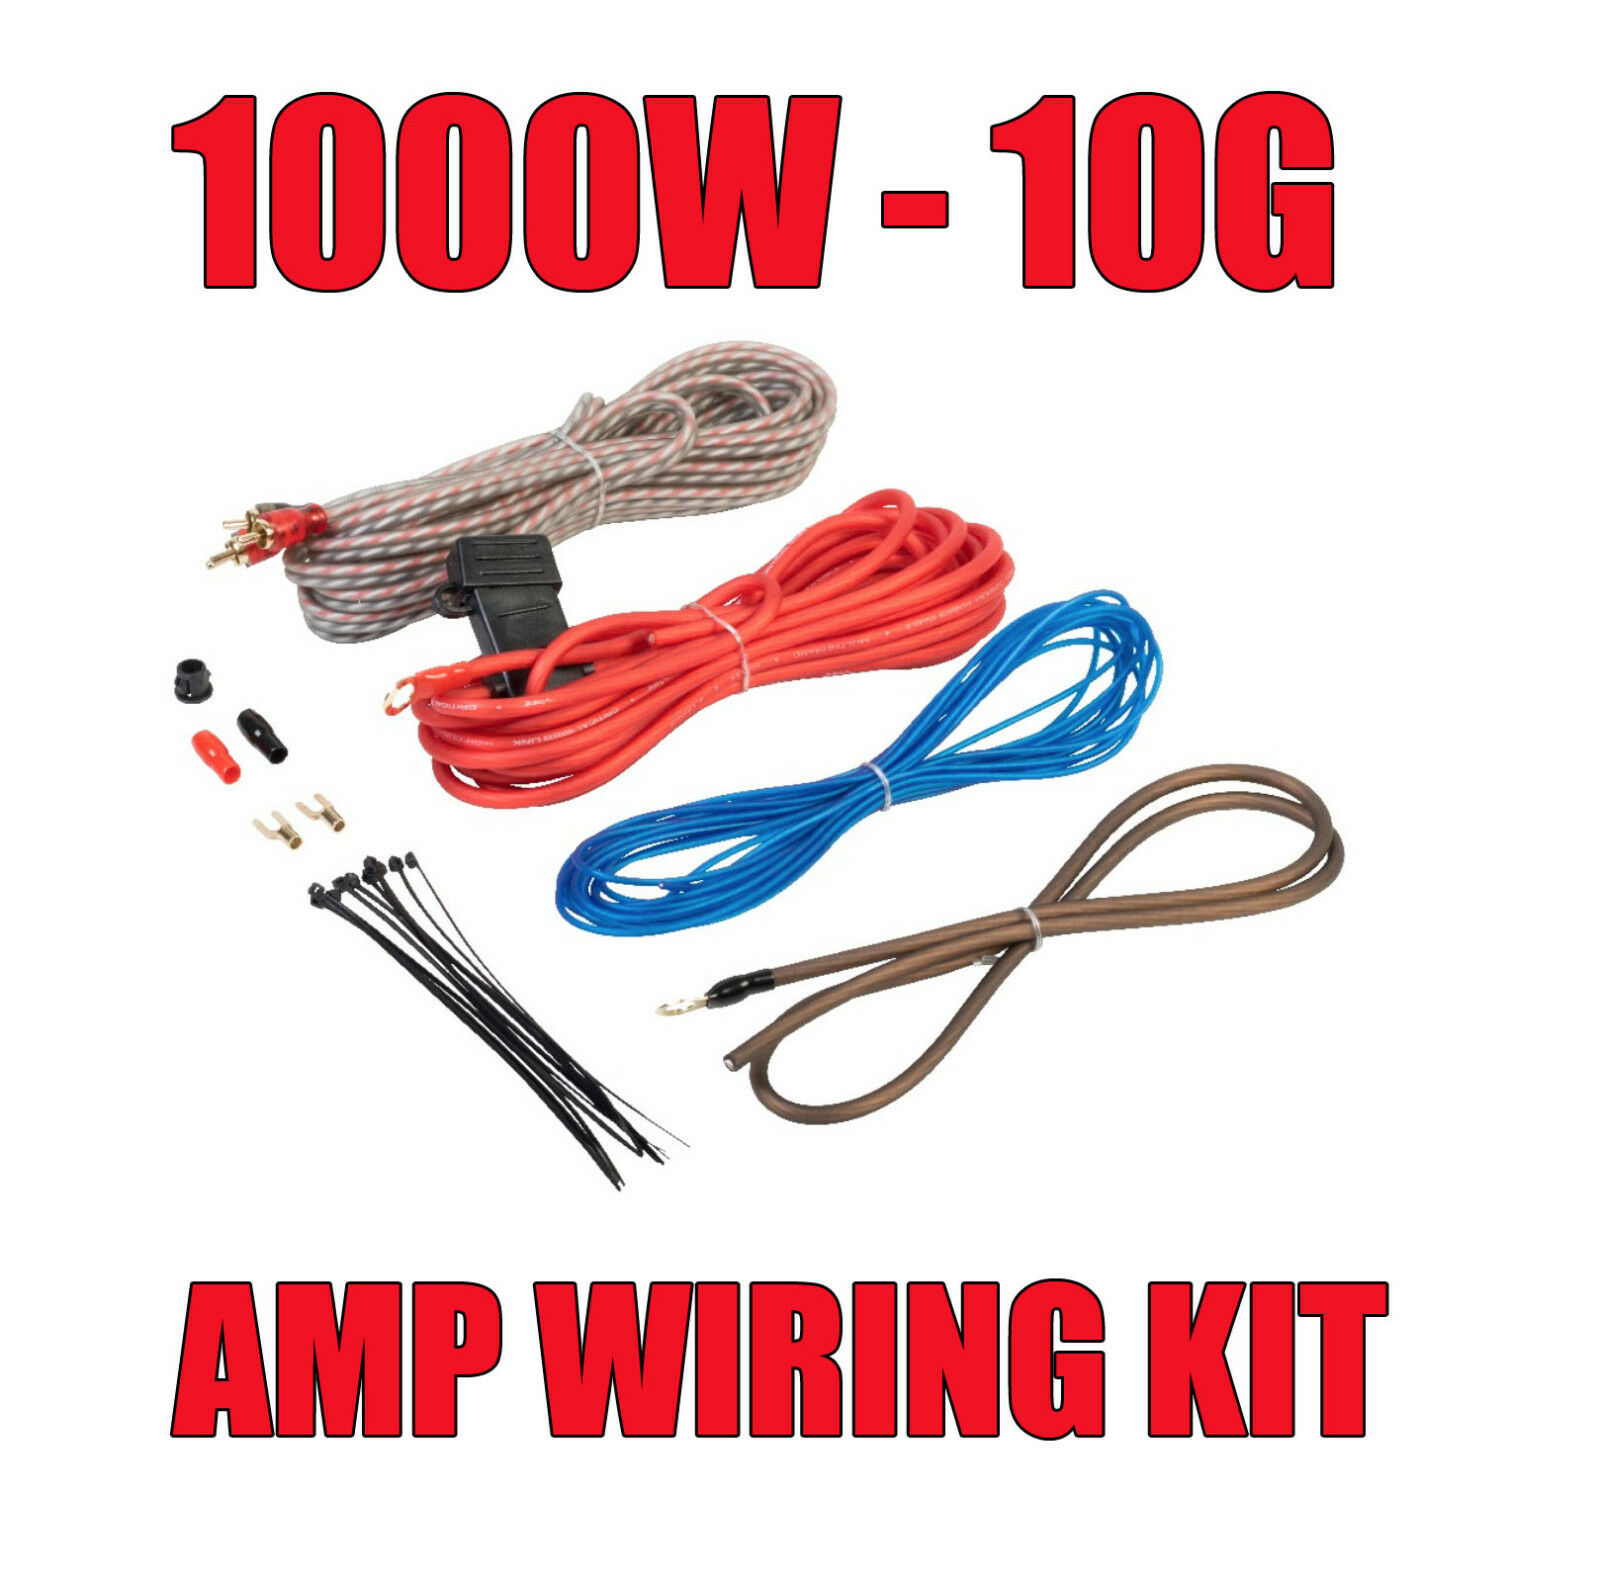 1000w Complete 10 Gauge Car Amp Vibe Fli Amplifier Cable Subwoofer Wiring Kits For Cars Kit 1 Of 2free Shipping See More